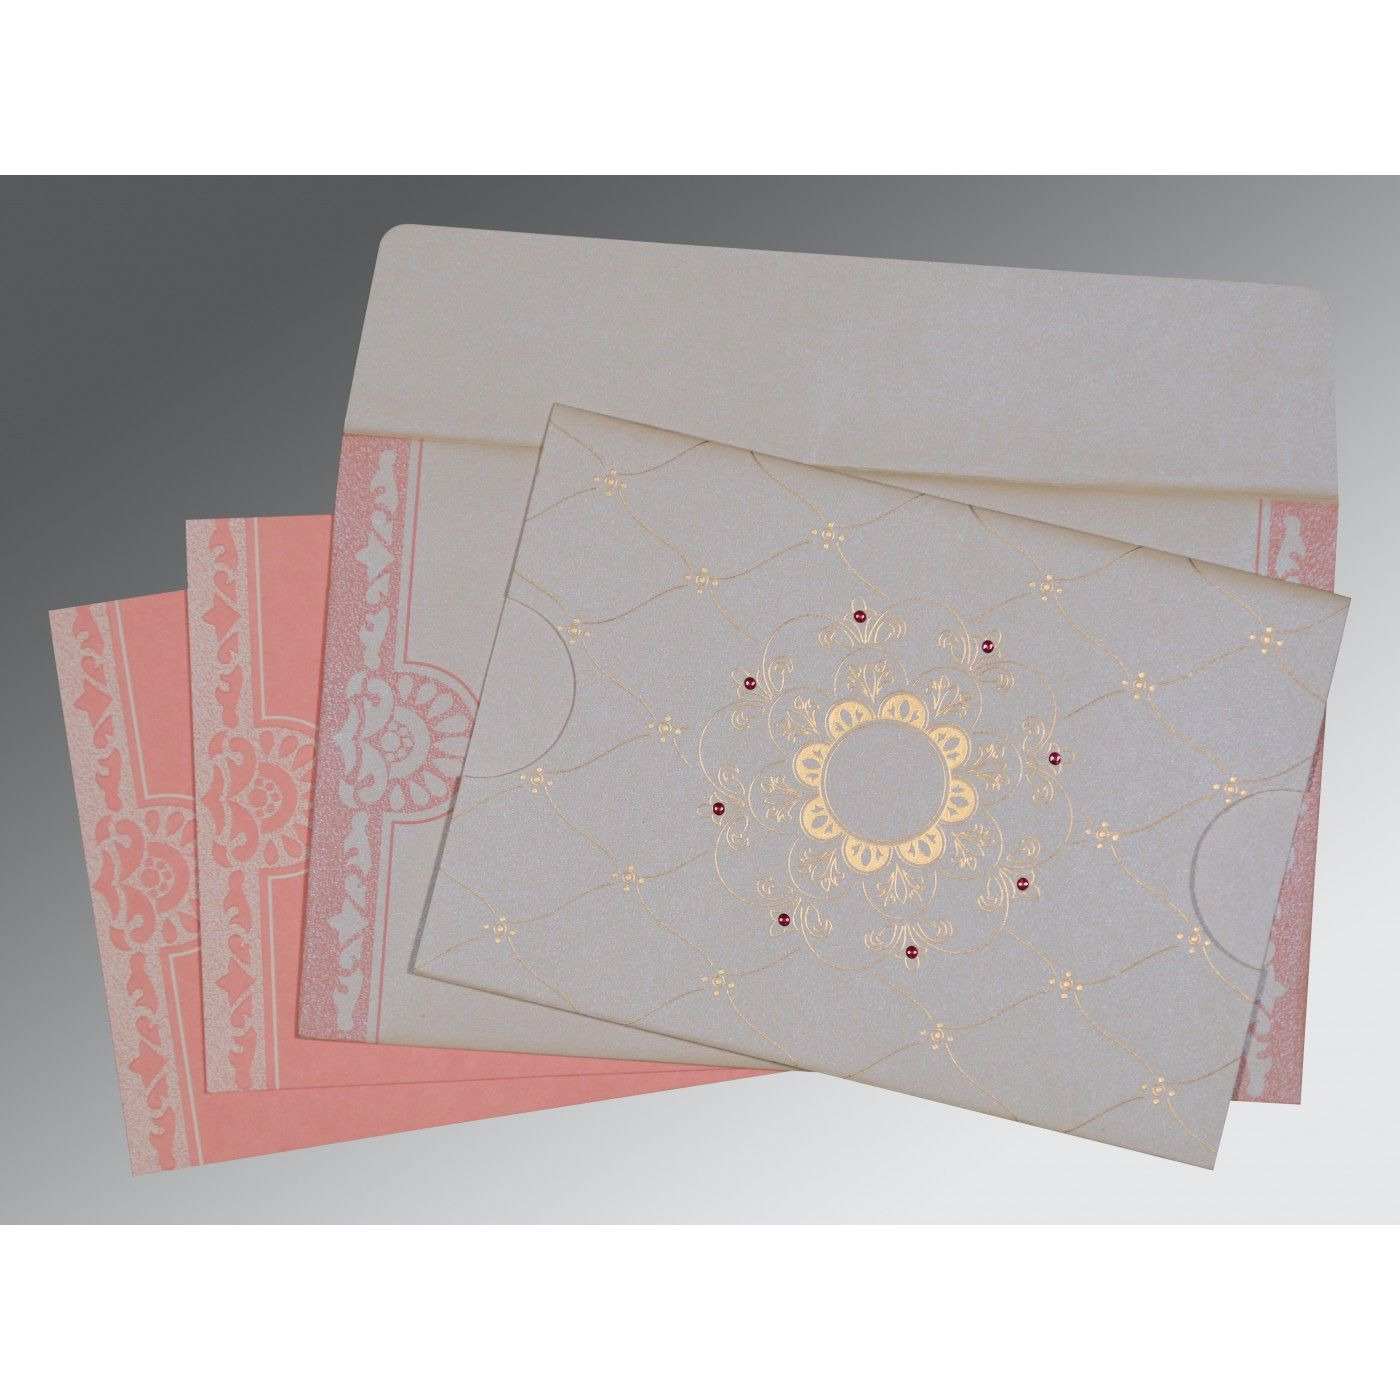 OFF-WHITE PINK SHIMMERY FLORAL THEMED - SCREEN PRINTED WEDDING CARD : CG-8227M - IndianWeddingCards